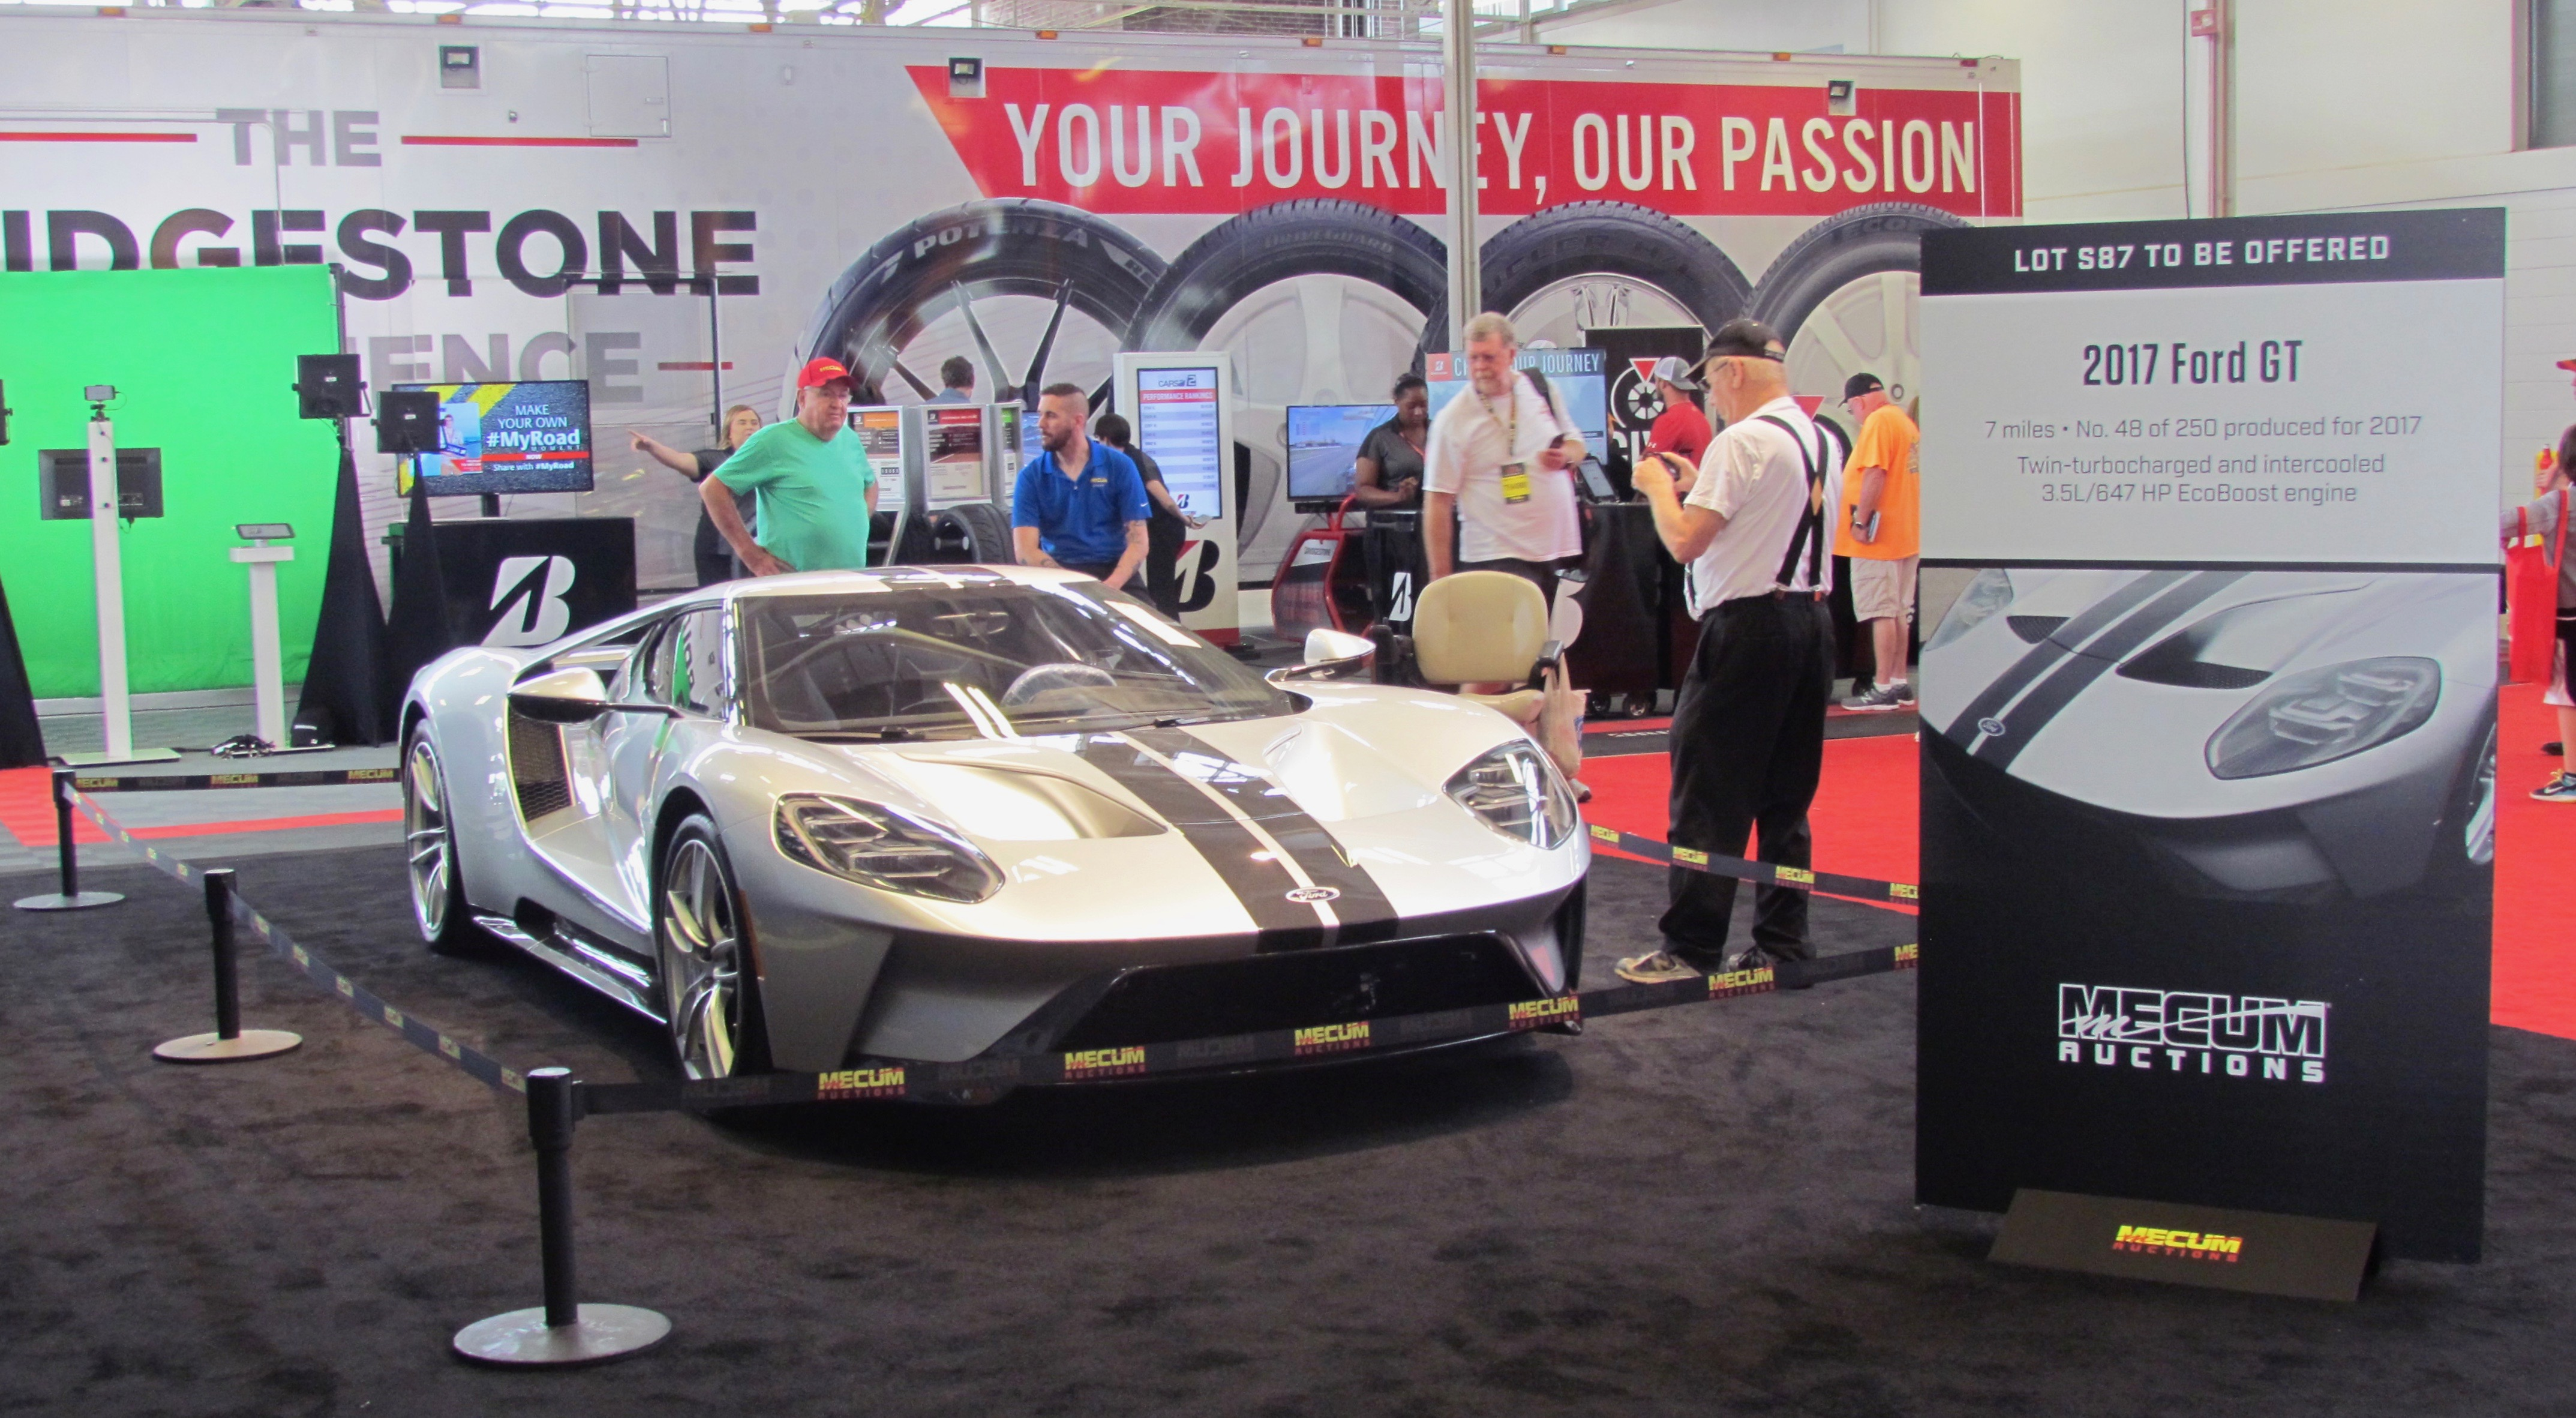 Ford GT, Controversial consignment: New Ford GT added to Mecum's Indy auction docket, ClassicCars.com Journal